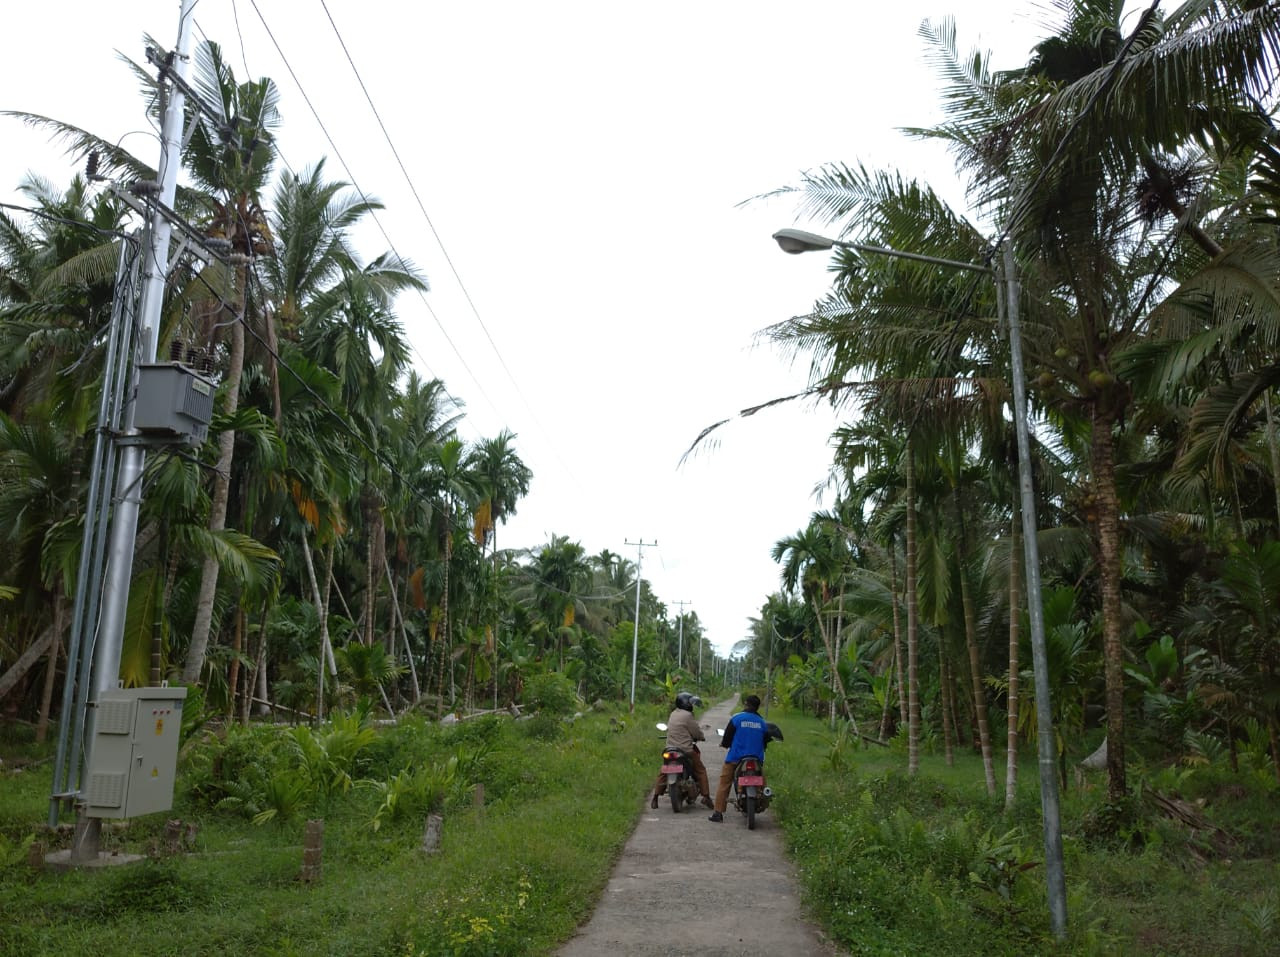 Short-circuited by red tape, companies struggle to electrify remote areas in Indonesia